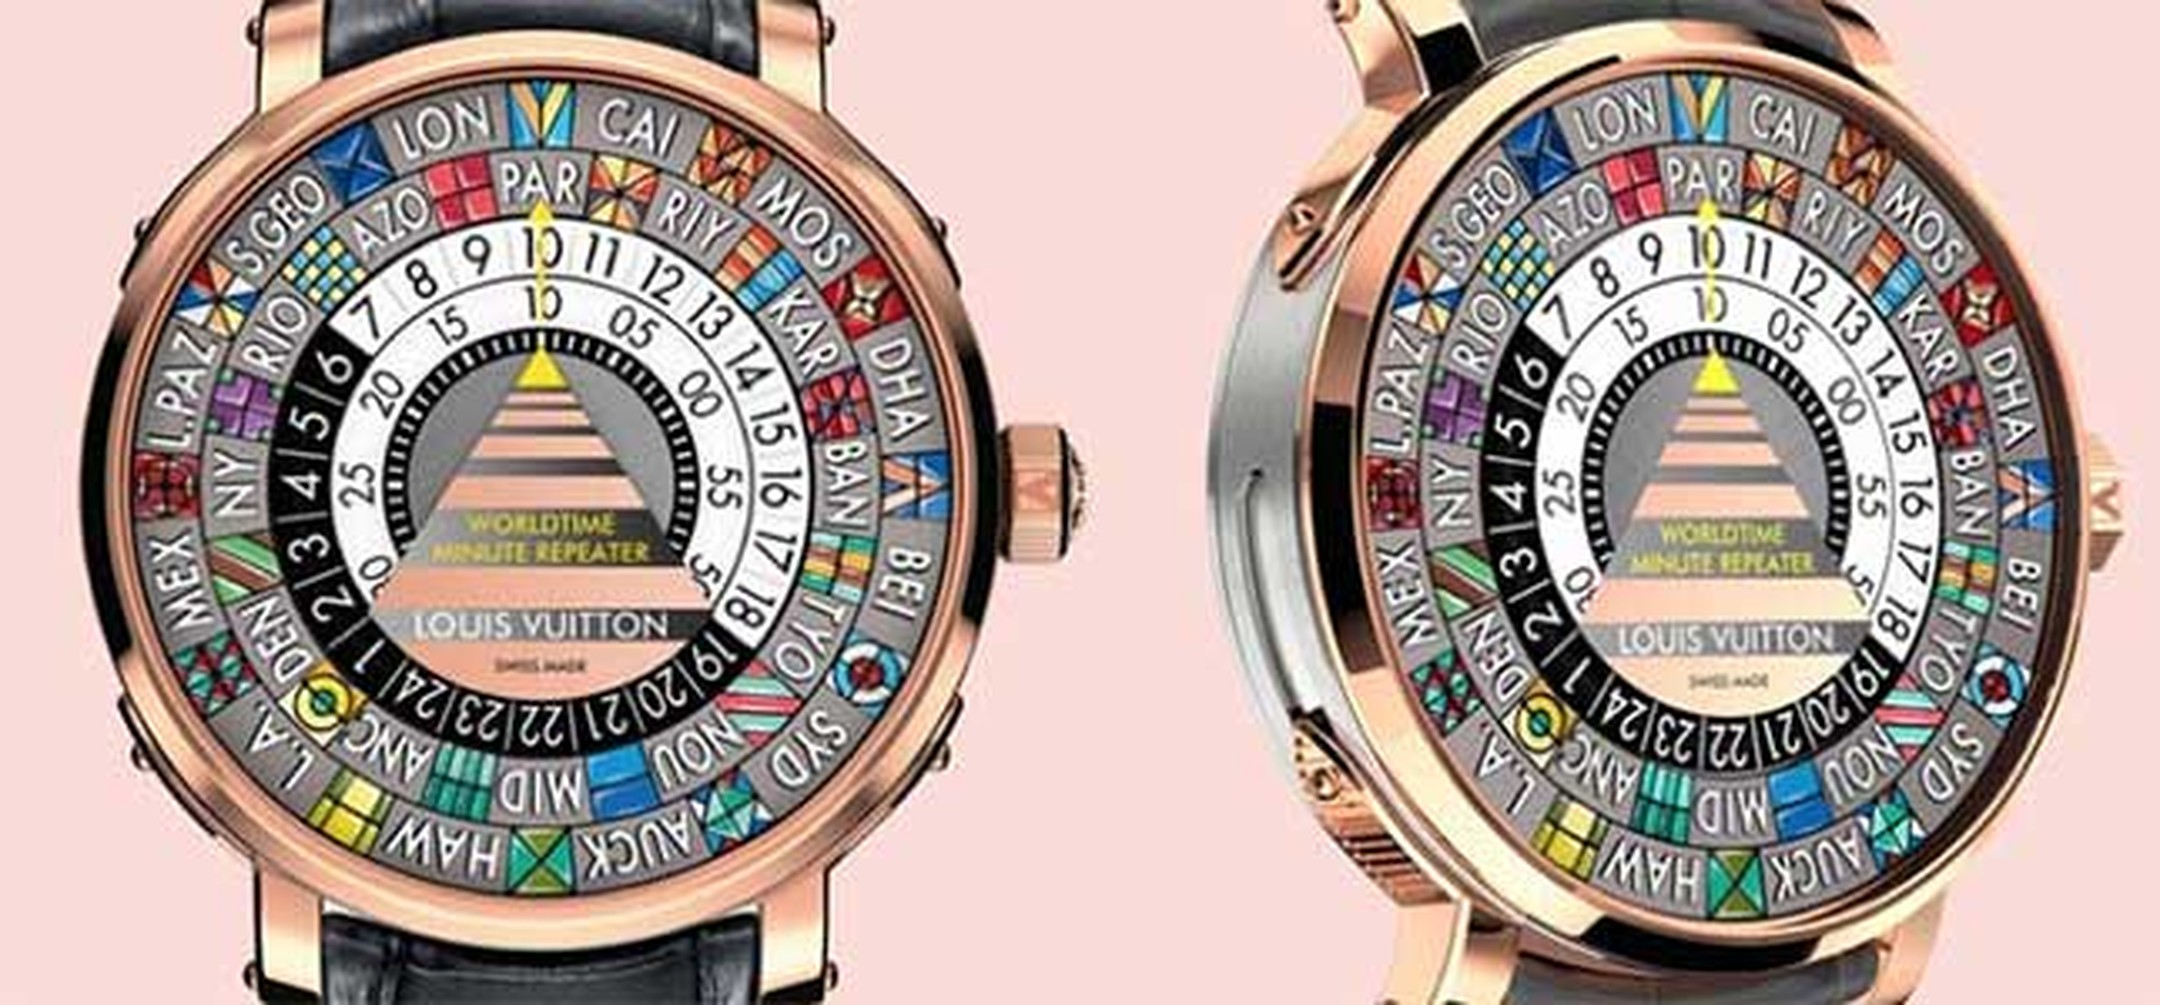 Louis -Vuitton -watches -Worldtime -Minute -Repeater